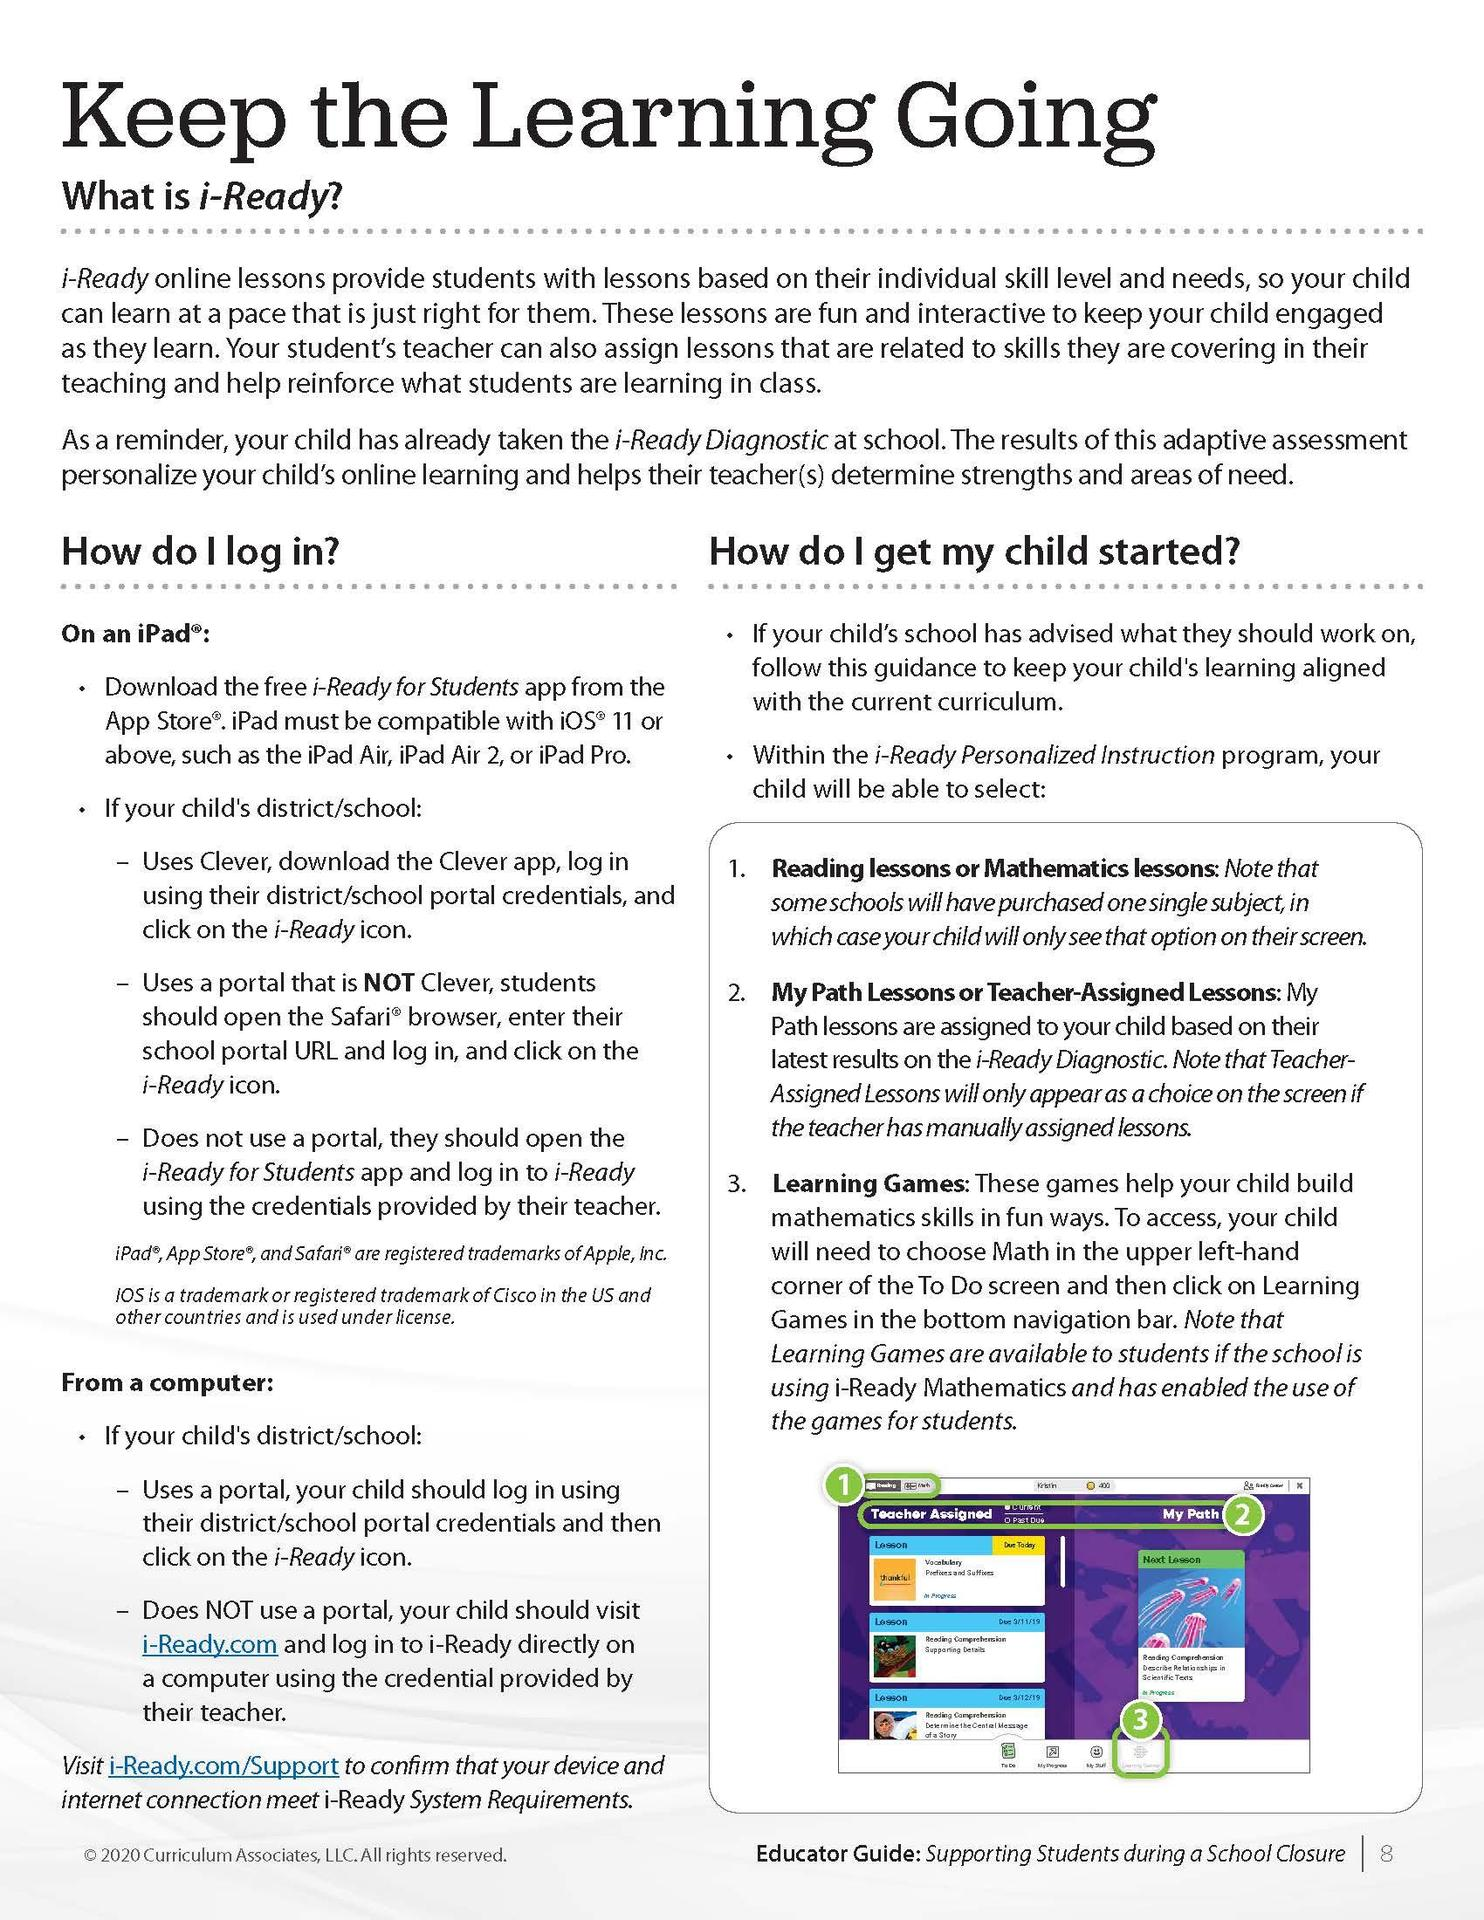 iReady Parent Guide